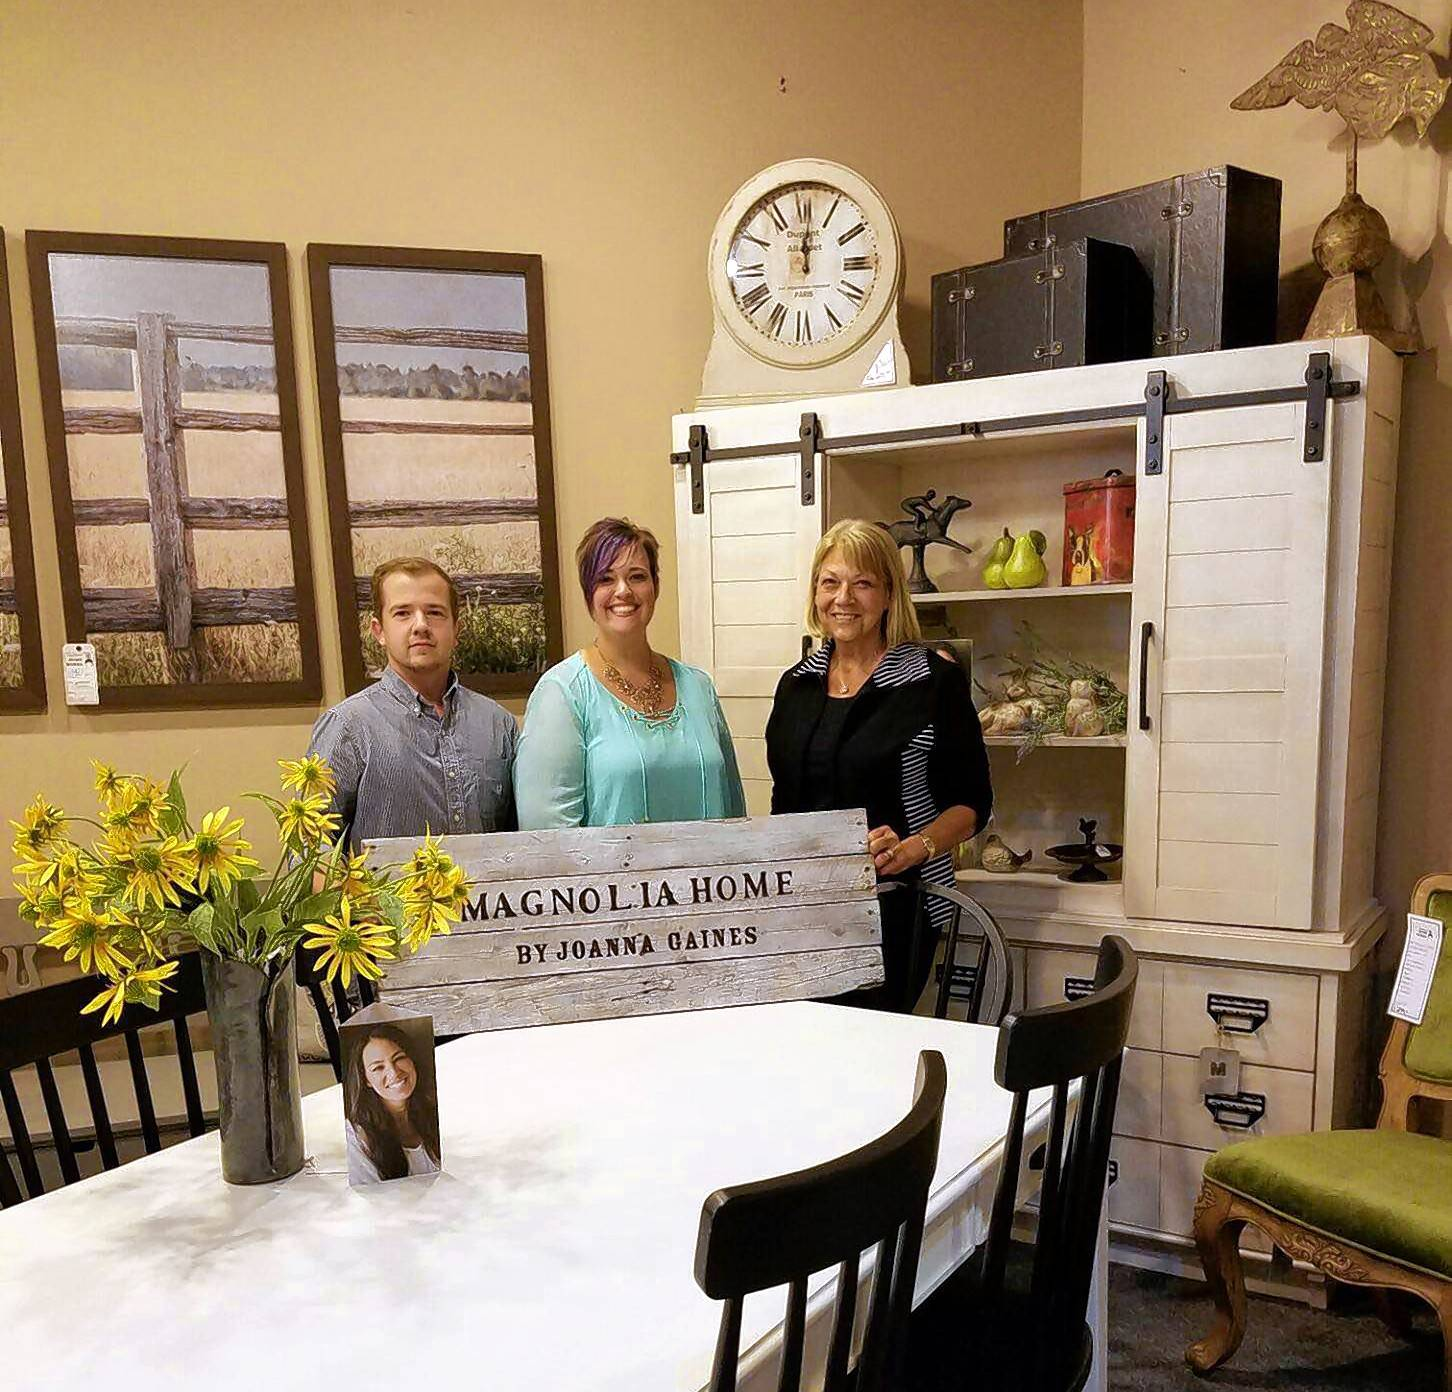 High Quality Catherine Cushing, At Right, Co Owner Of Geneva Home Works In West Chicago